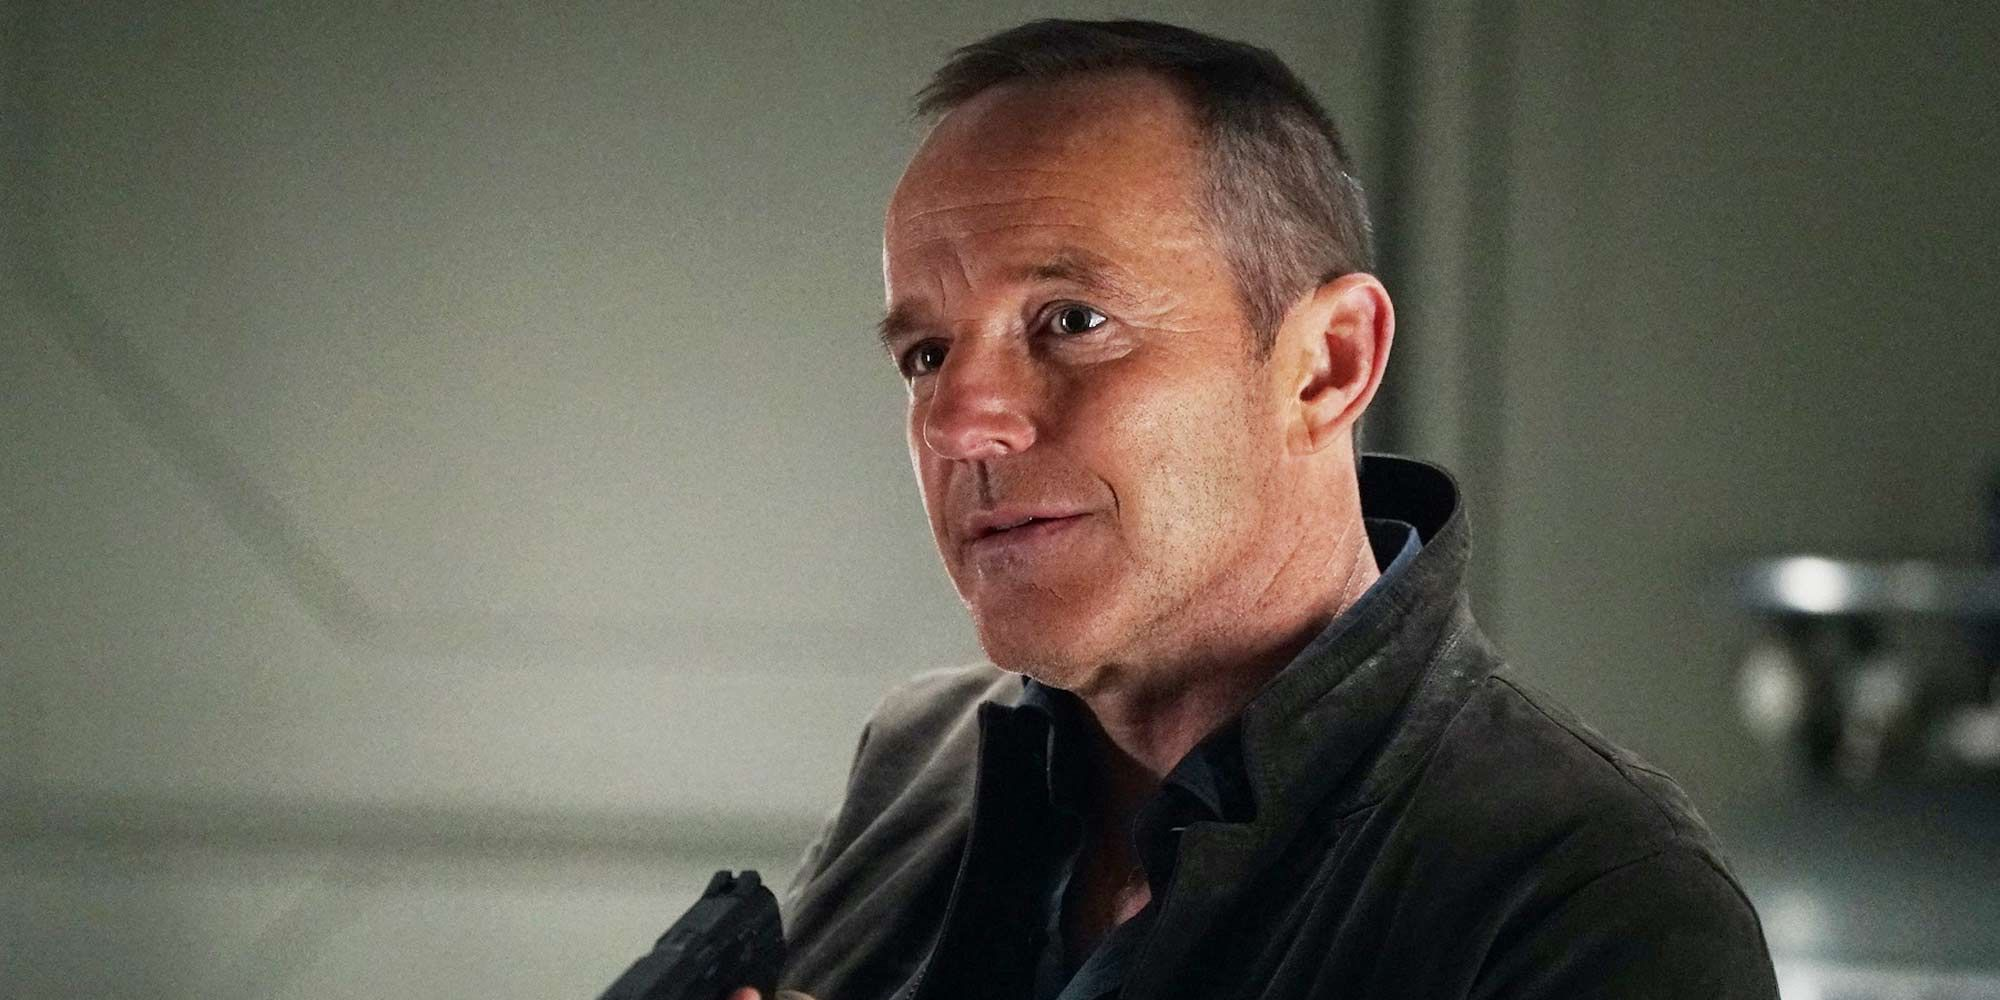 Agent Phil Coulson, Marvel's Agent of SHIELD, season 4